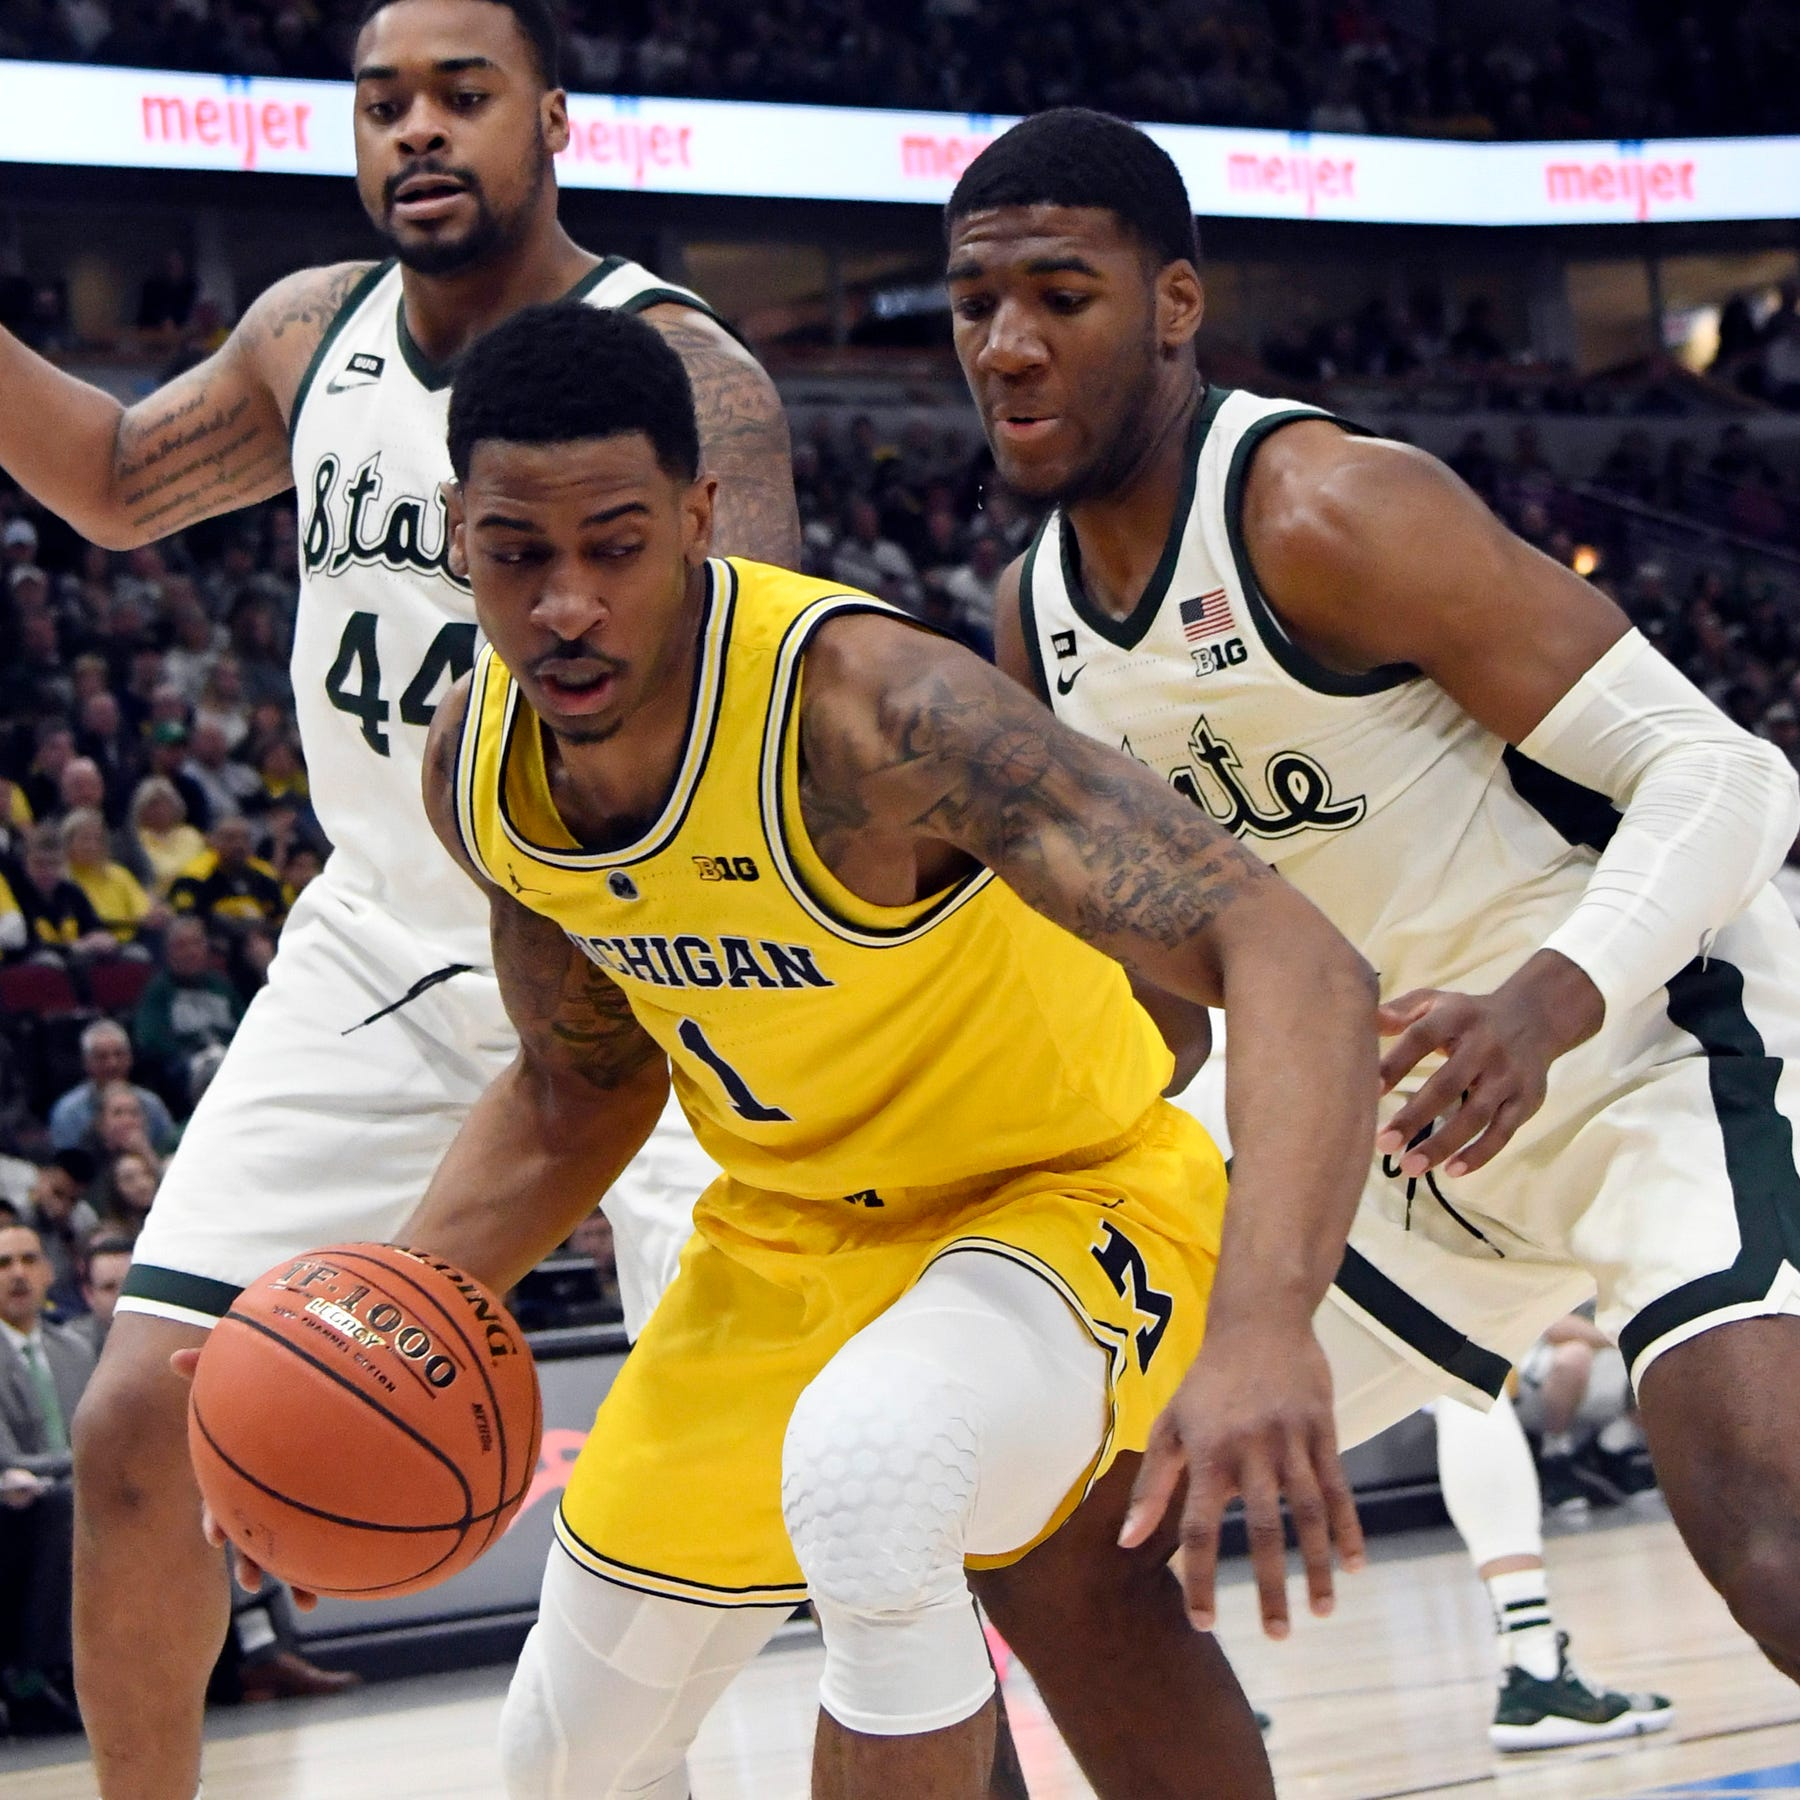 Michigan State leaves no doubt in three-game sweep of Michigan